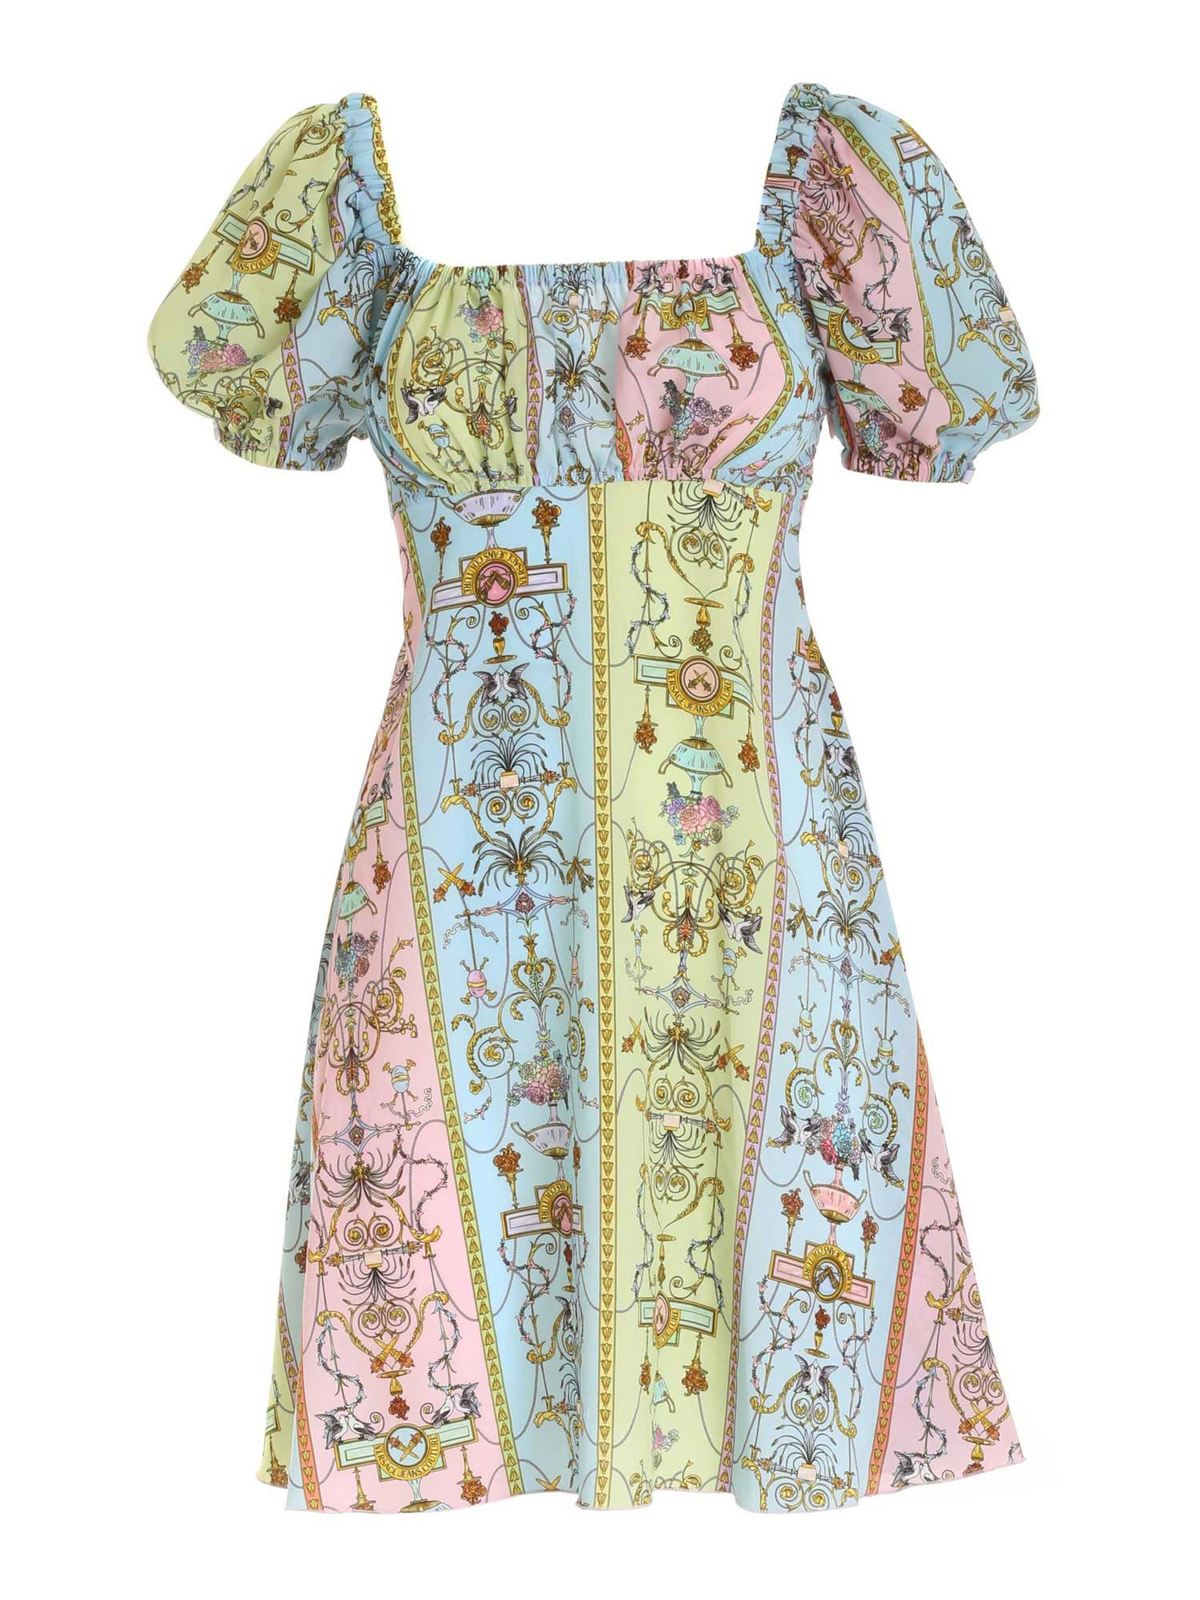 Versace Jeans Couture Dresses TUILERIES PRINT DRESS IN LIGHT BLUE